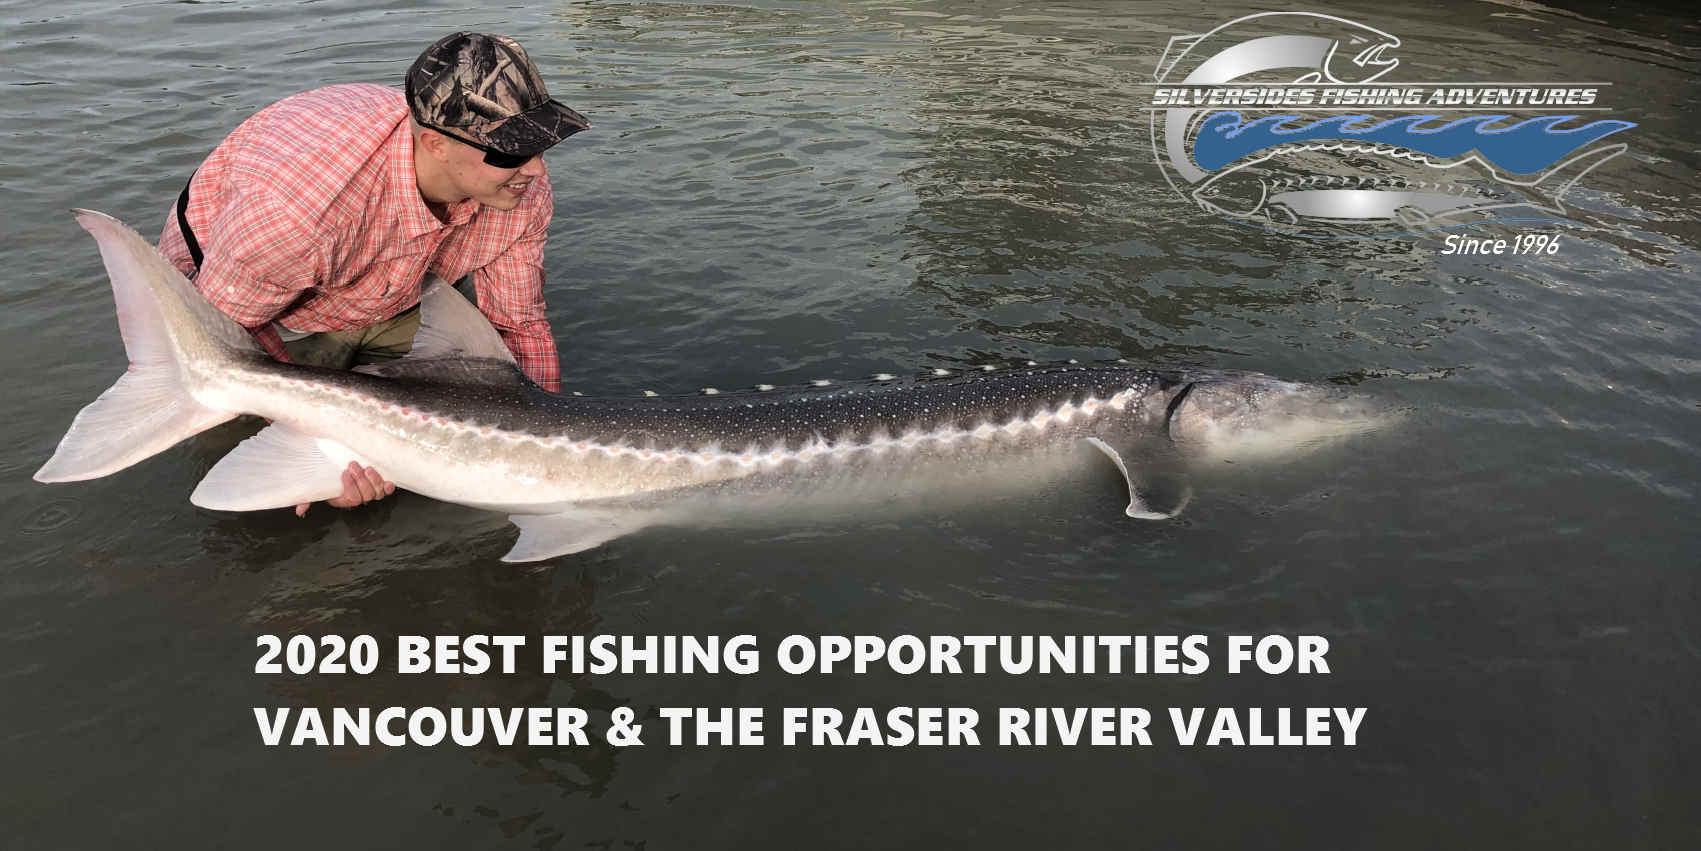 best fishing bc 2020, best fishing vancouver 2020, best fishing fraser river 2020, best fishing bc, fishing forecast bc